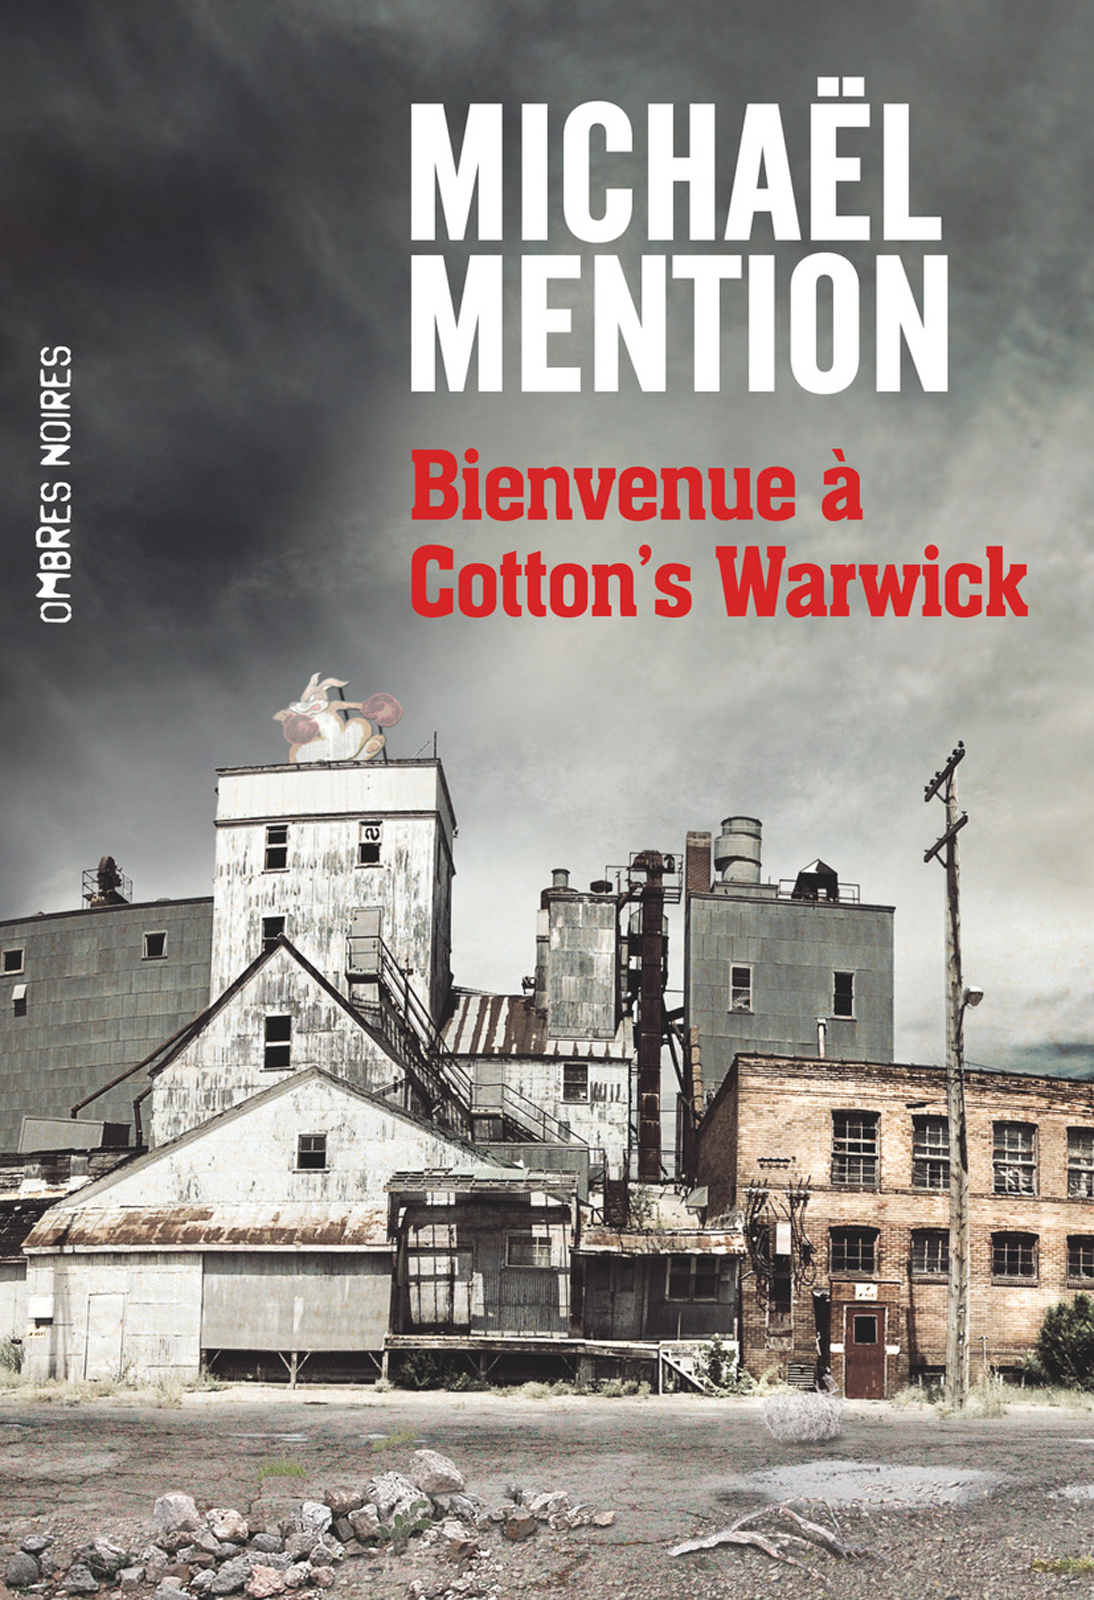 Bienvenue à Cotton's Warwick